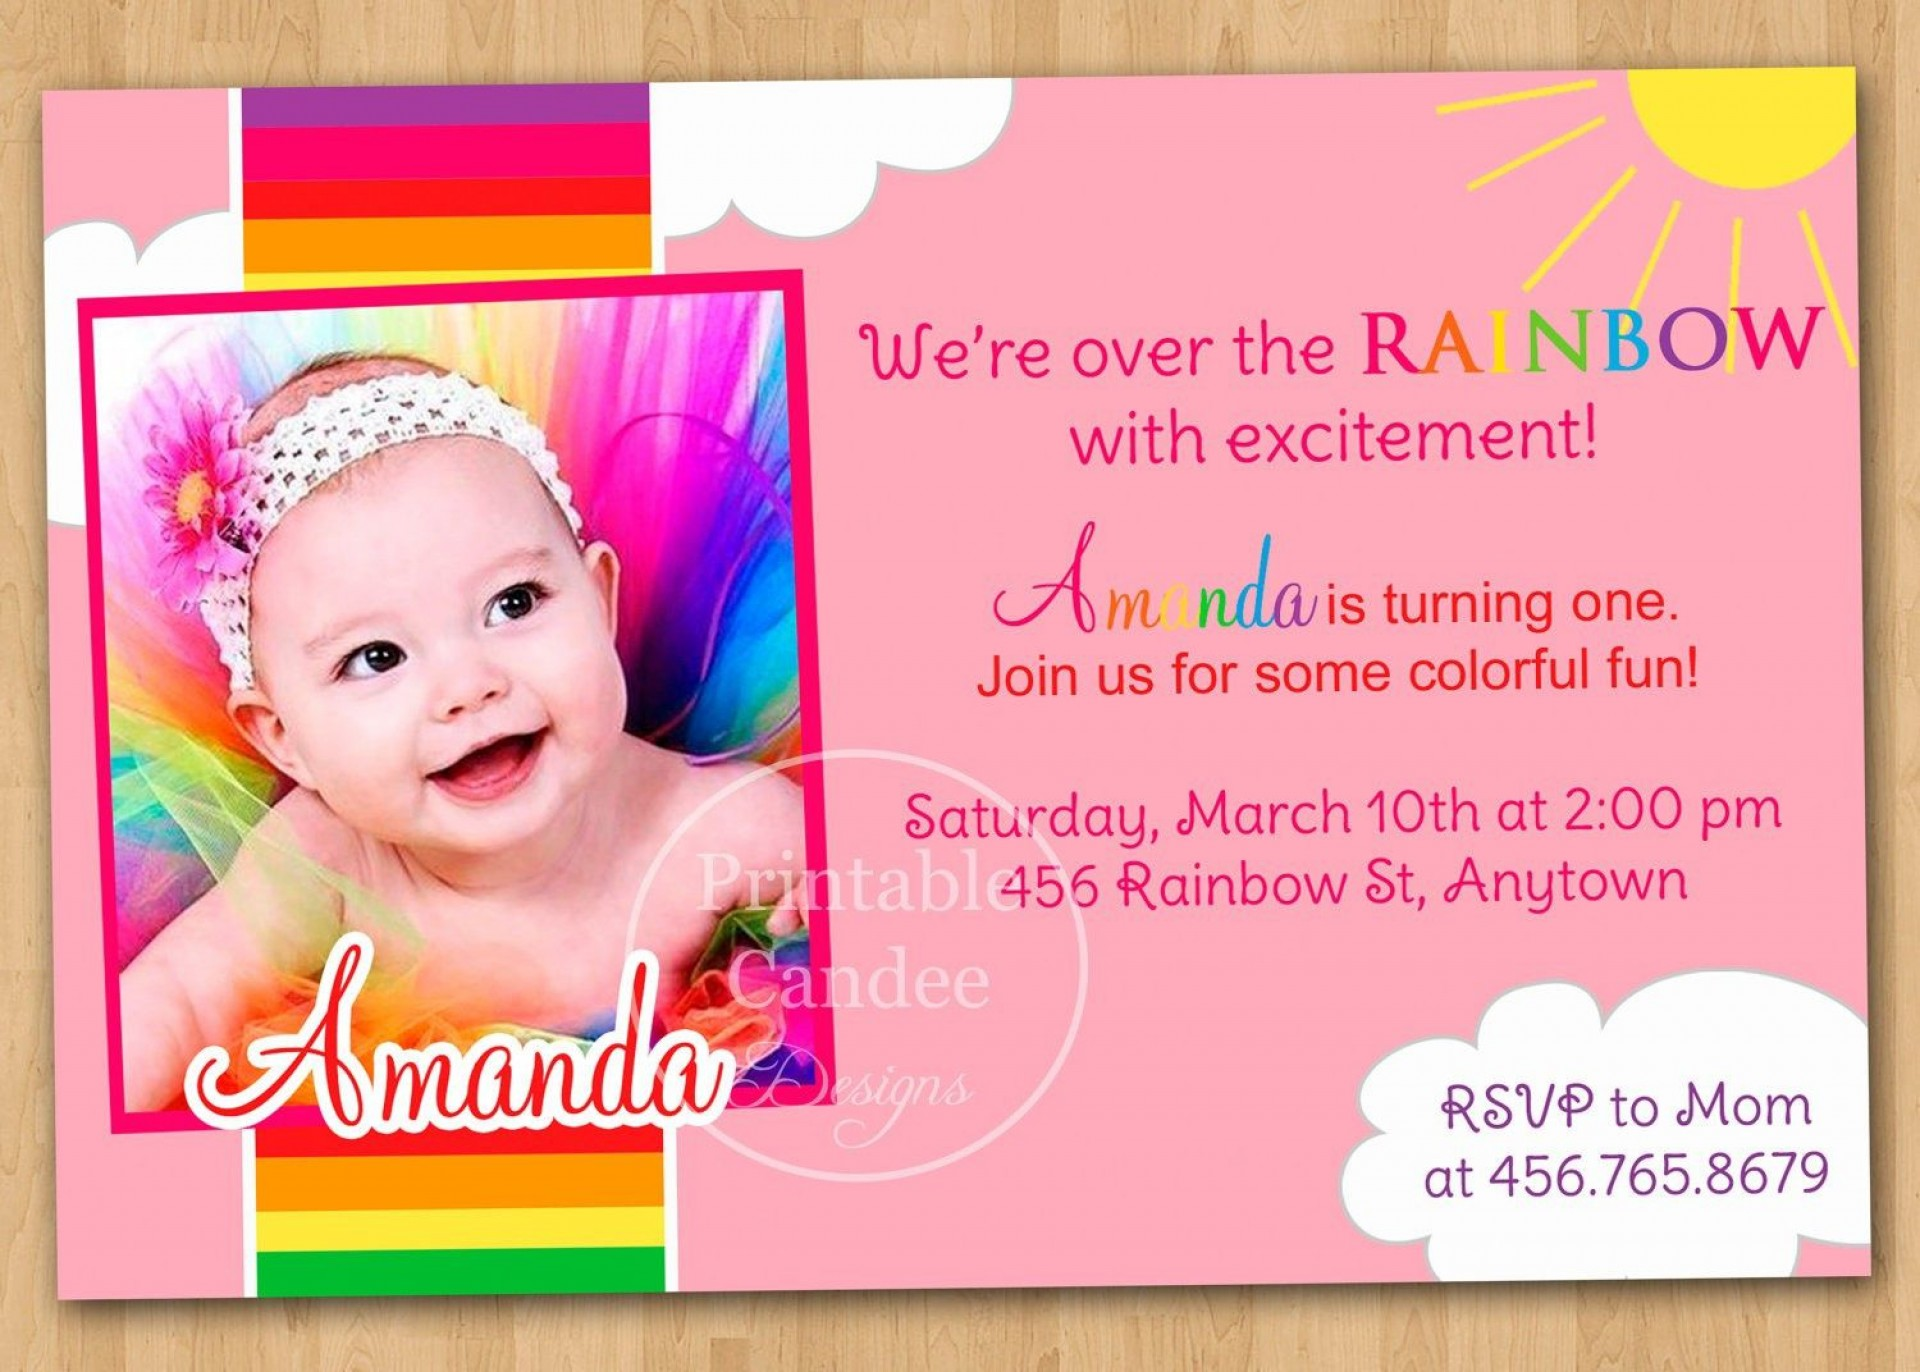 007 Incredible 1st Birthday Invitation Template Design  Background Blank For Girl First Baby Boy Free Download Indian1920